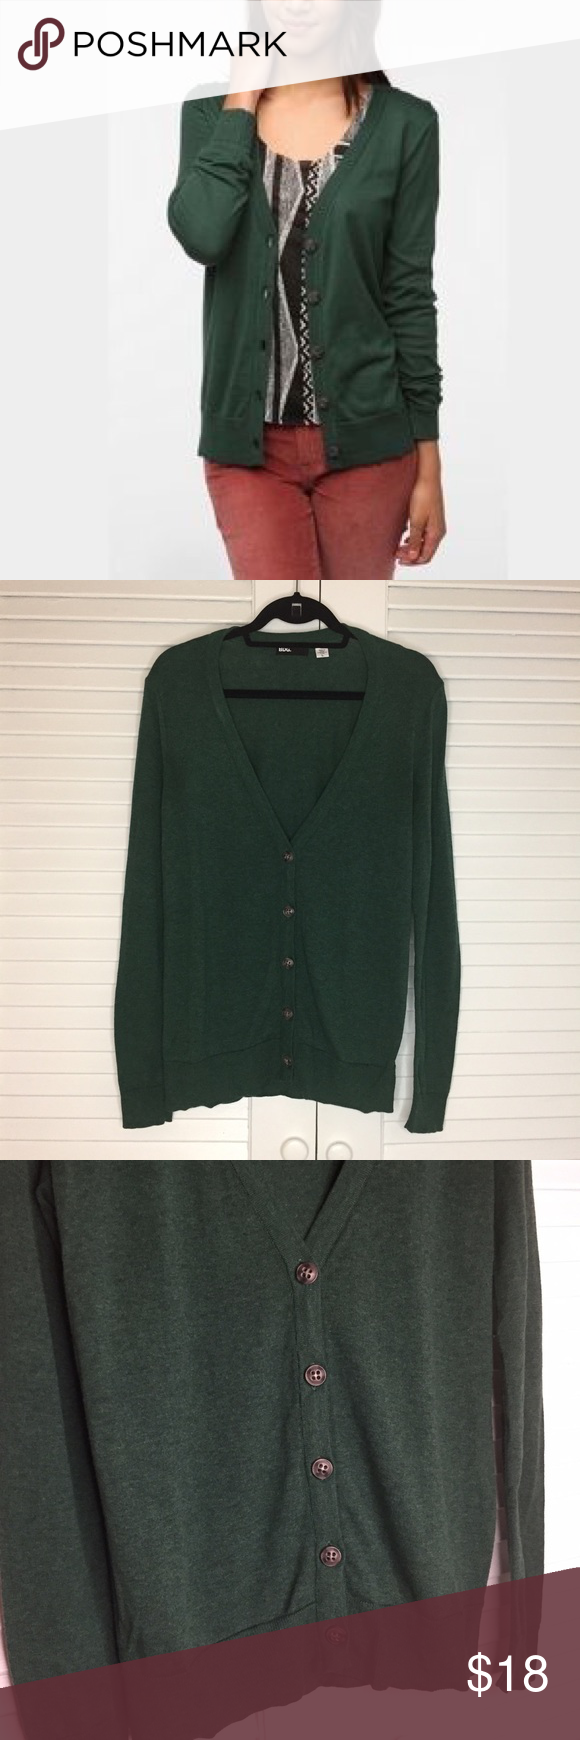 Urban Outfitters BDG Classic Cardigan Sweater | Urban outfitters ...